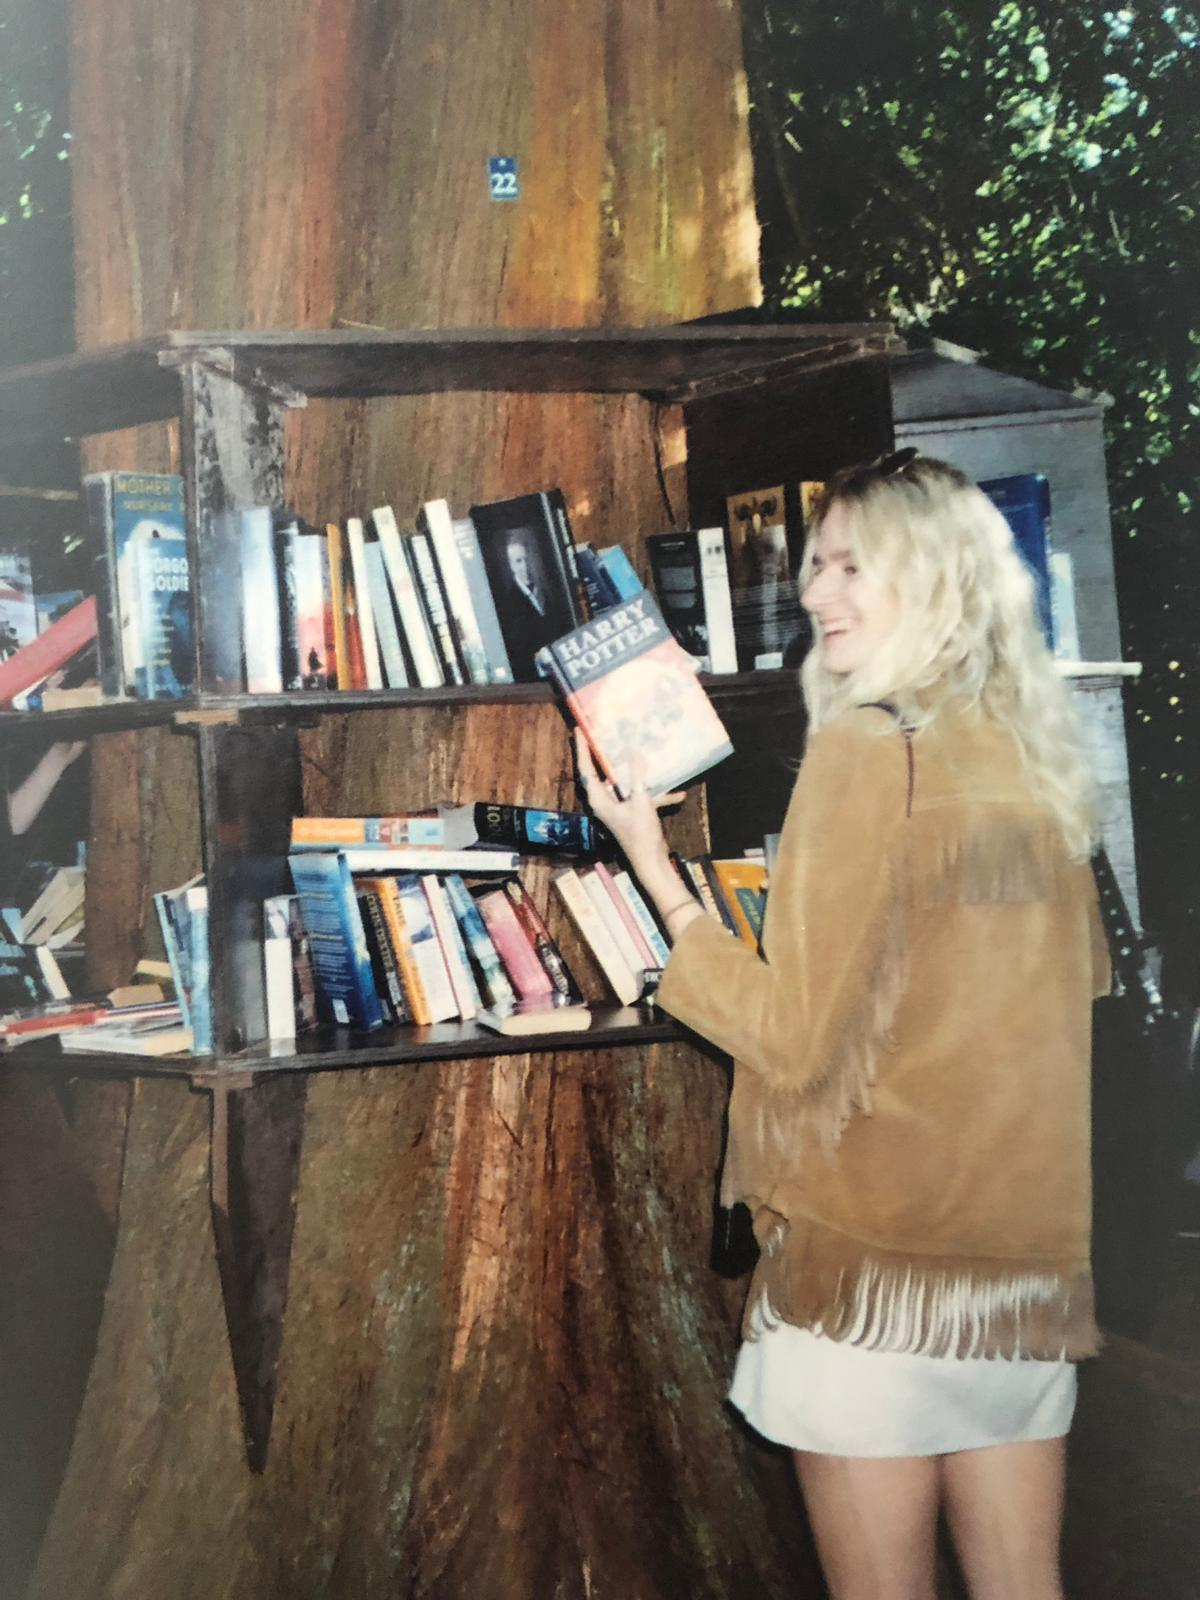 SO chuffed to find a tree in the woods that doubled up as a library, also chuffed to find Harry Potter.